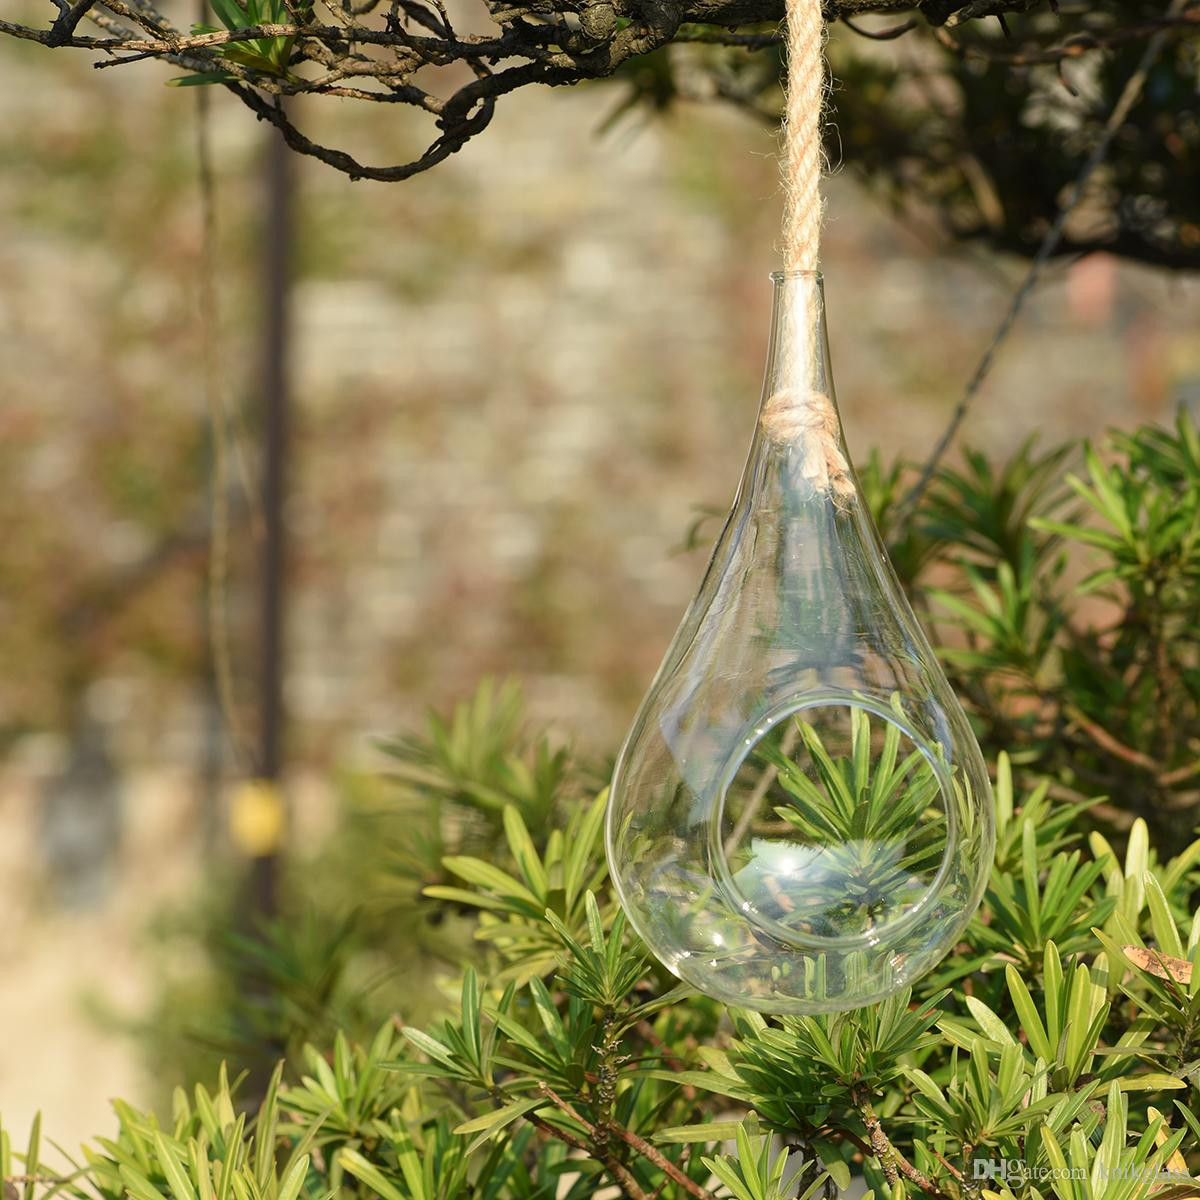 hanging teardrop vase of 2018 11 inch height large glass drop globeheld by rope hanging inside 11 inch height large glass drop globeheld by rope hanging glass teardrop shape